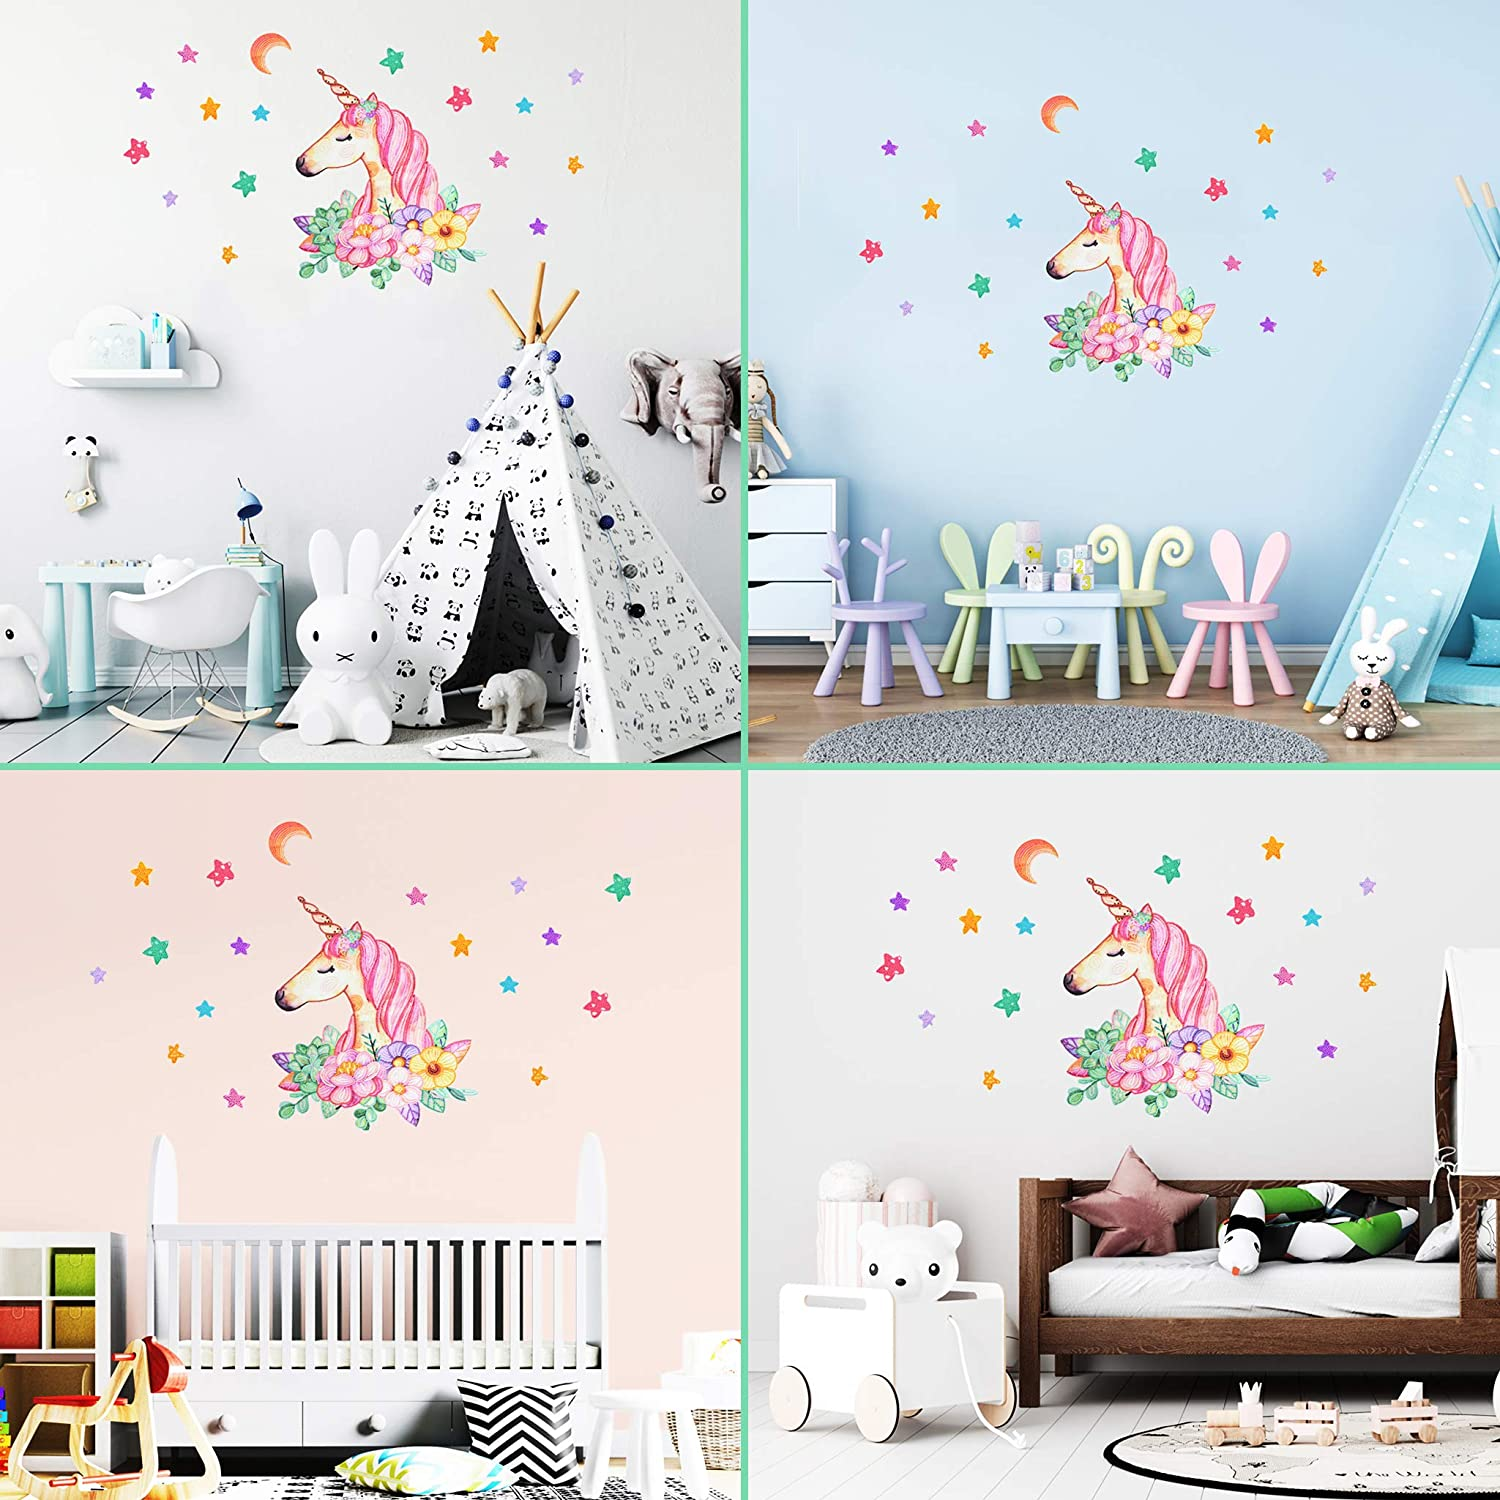 16X20//28X39 Diamond Painting Art Kits for Kids Beginners Cute Unicorn Wall Decor Stickers for Girls Bedroom Christmas Birthday Gifts for Girls Kids Fun DIY Paint with Gem Dots for Teens Easy